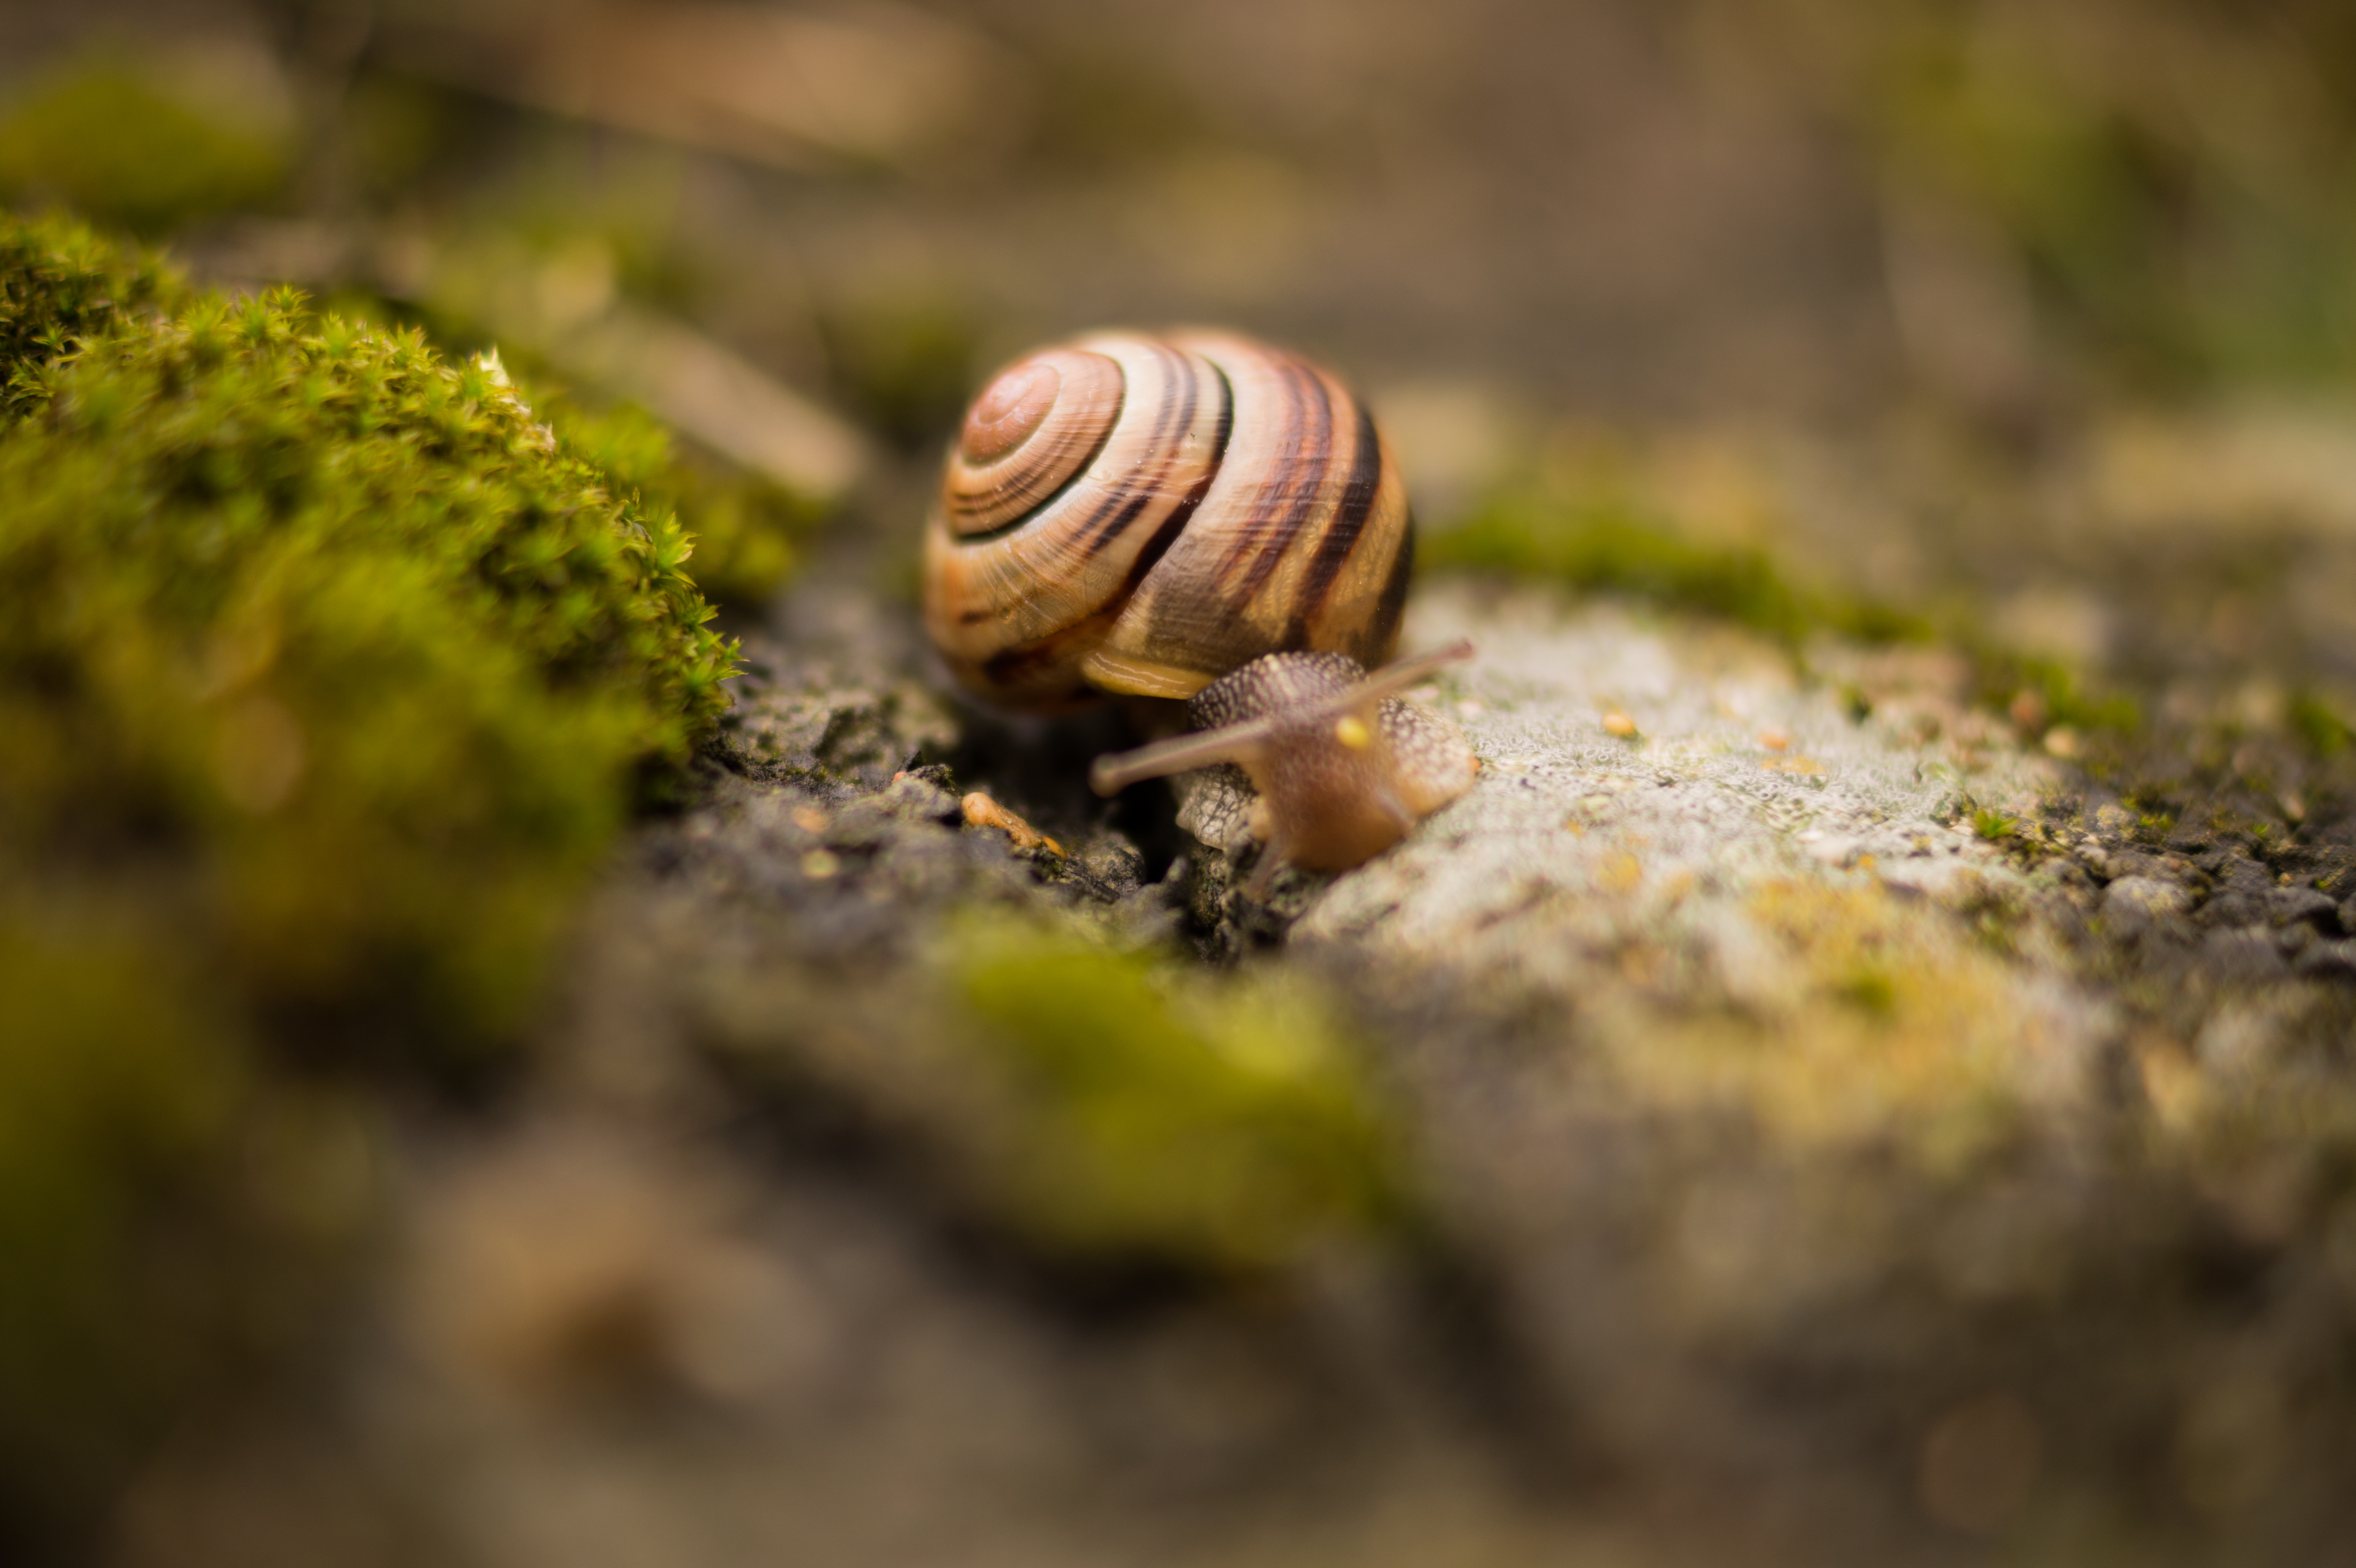 Forest Animal Wallpaper Brown Snail 183 Free Stock Photo